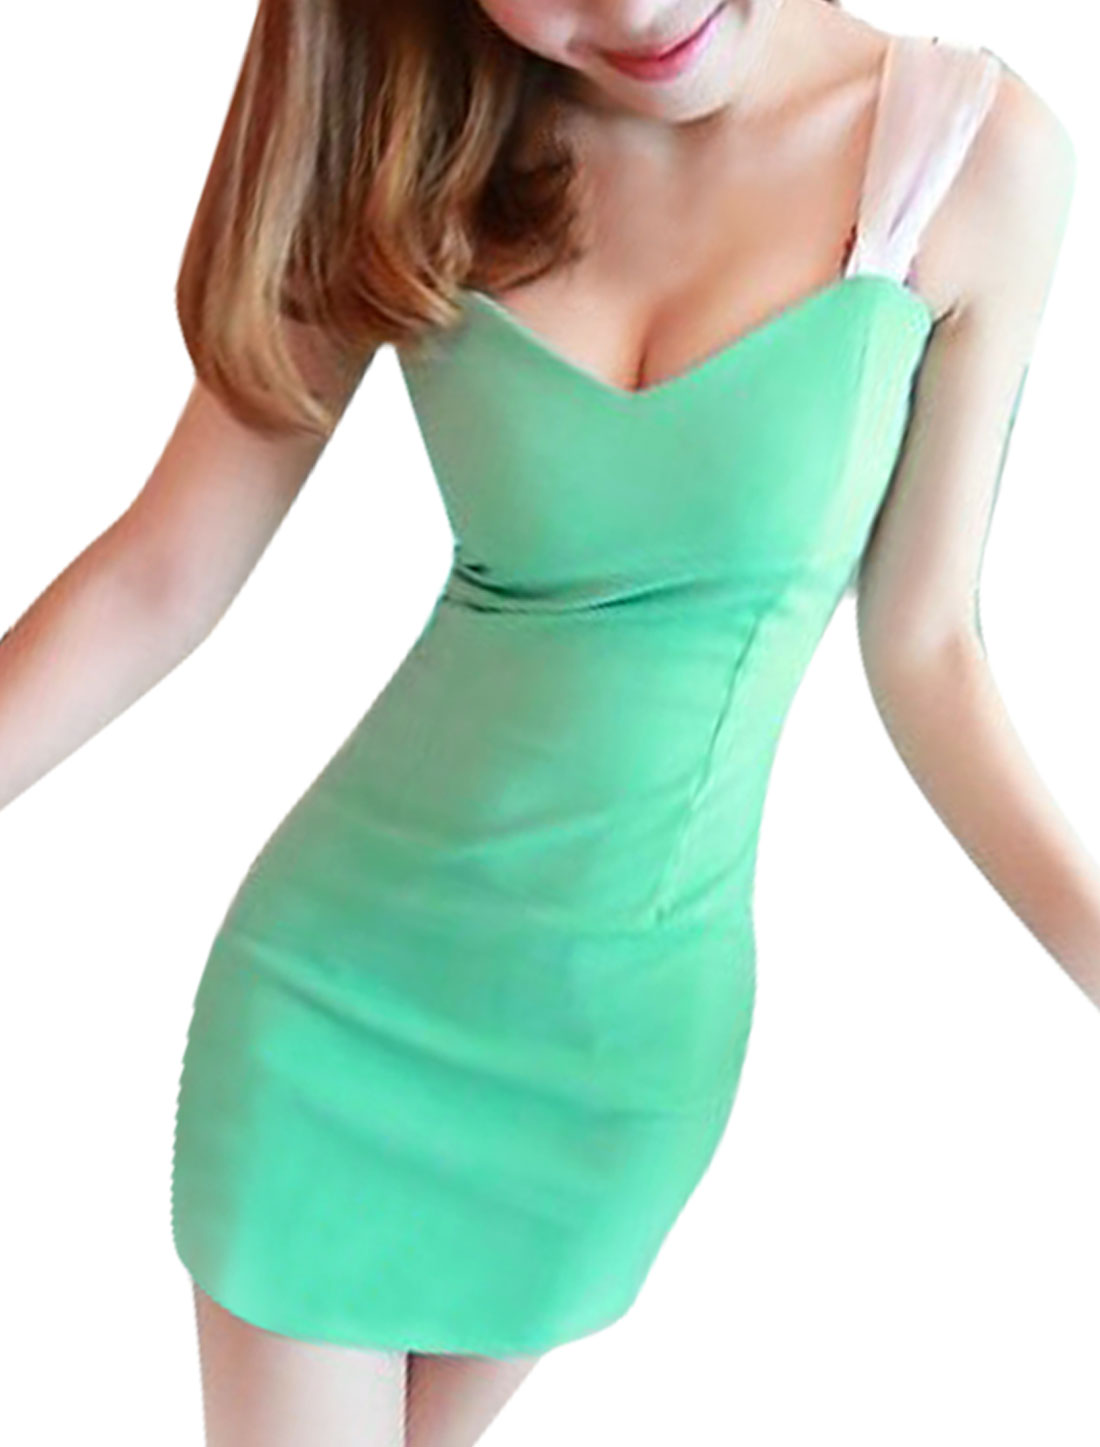 Lady Green Sweetheart Neckline Sleeveless Hidden Side Zipper Backless Mini Dress XS